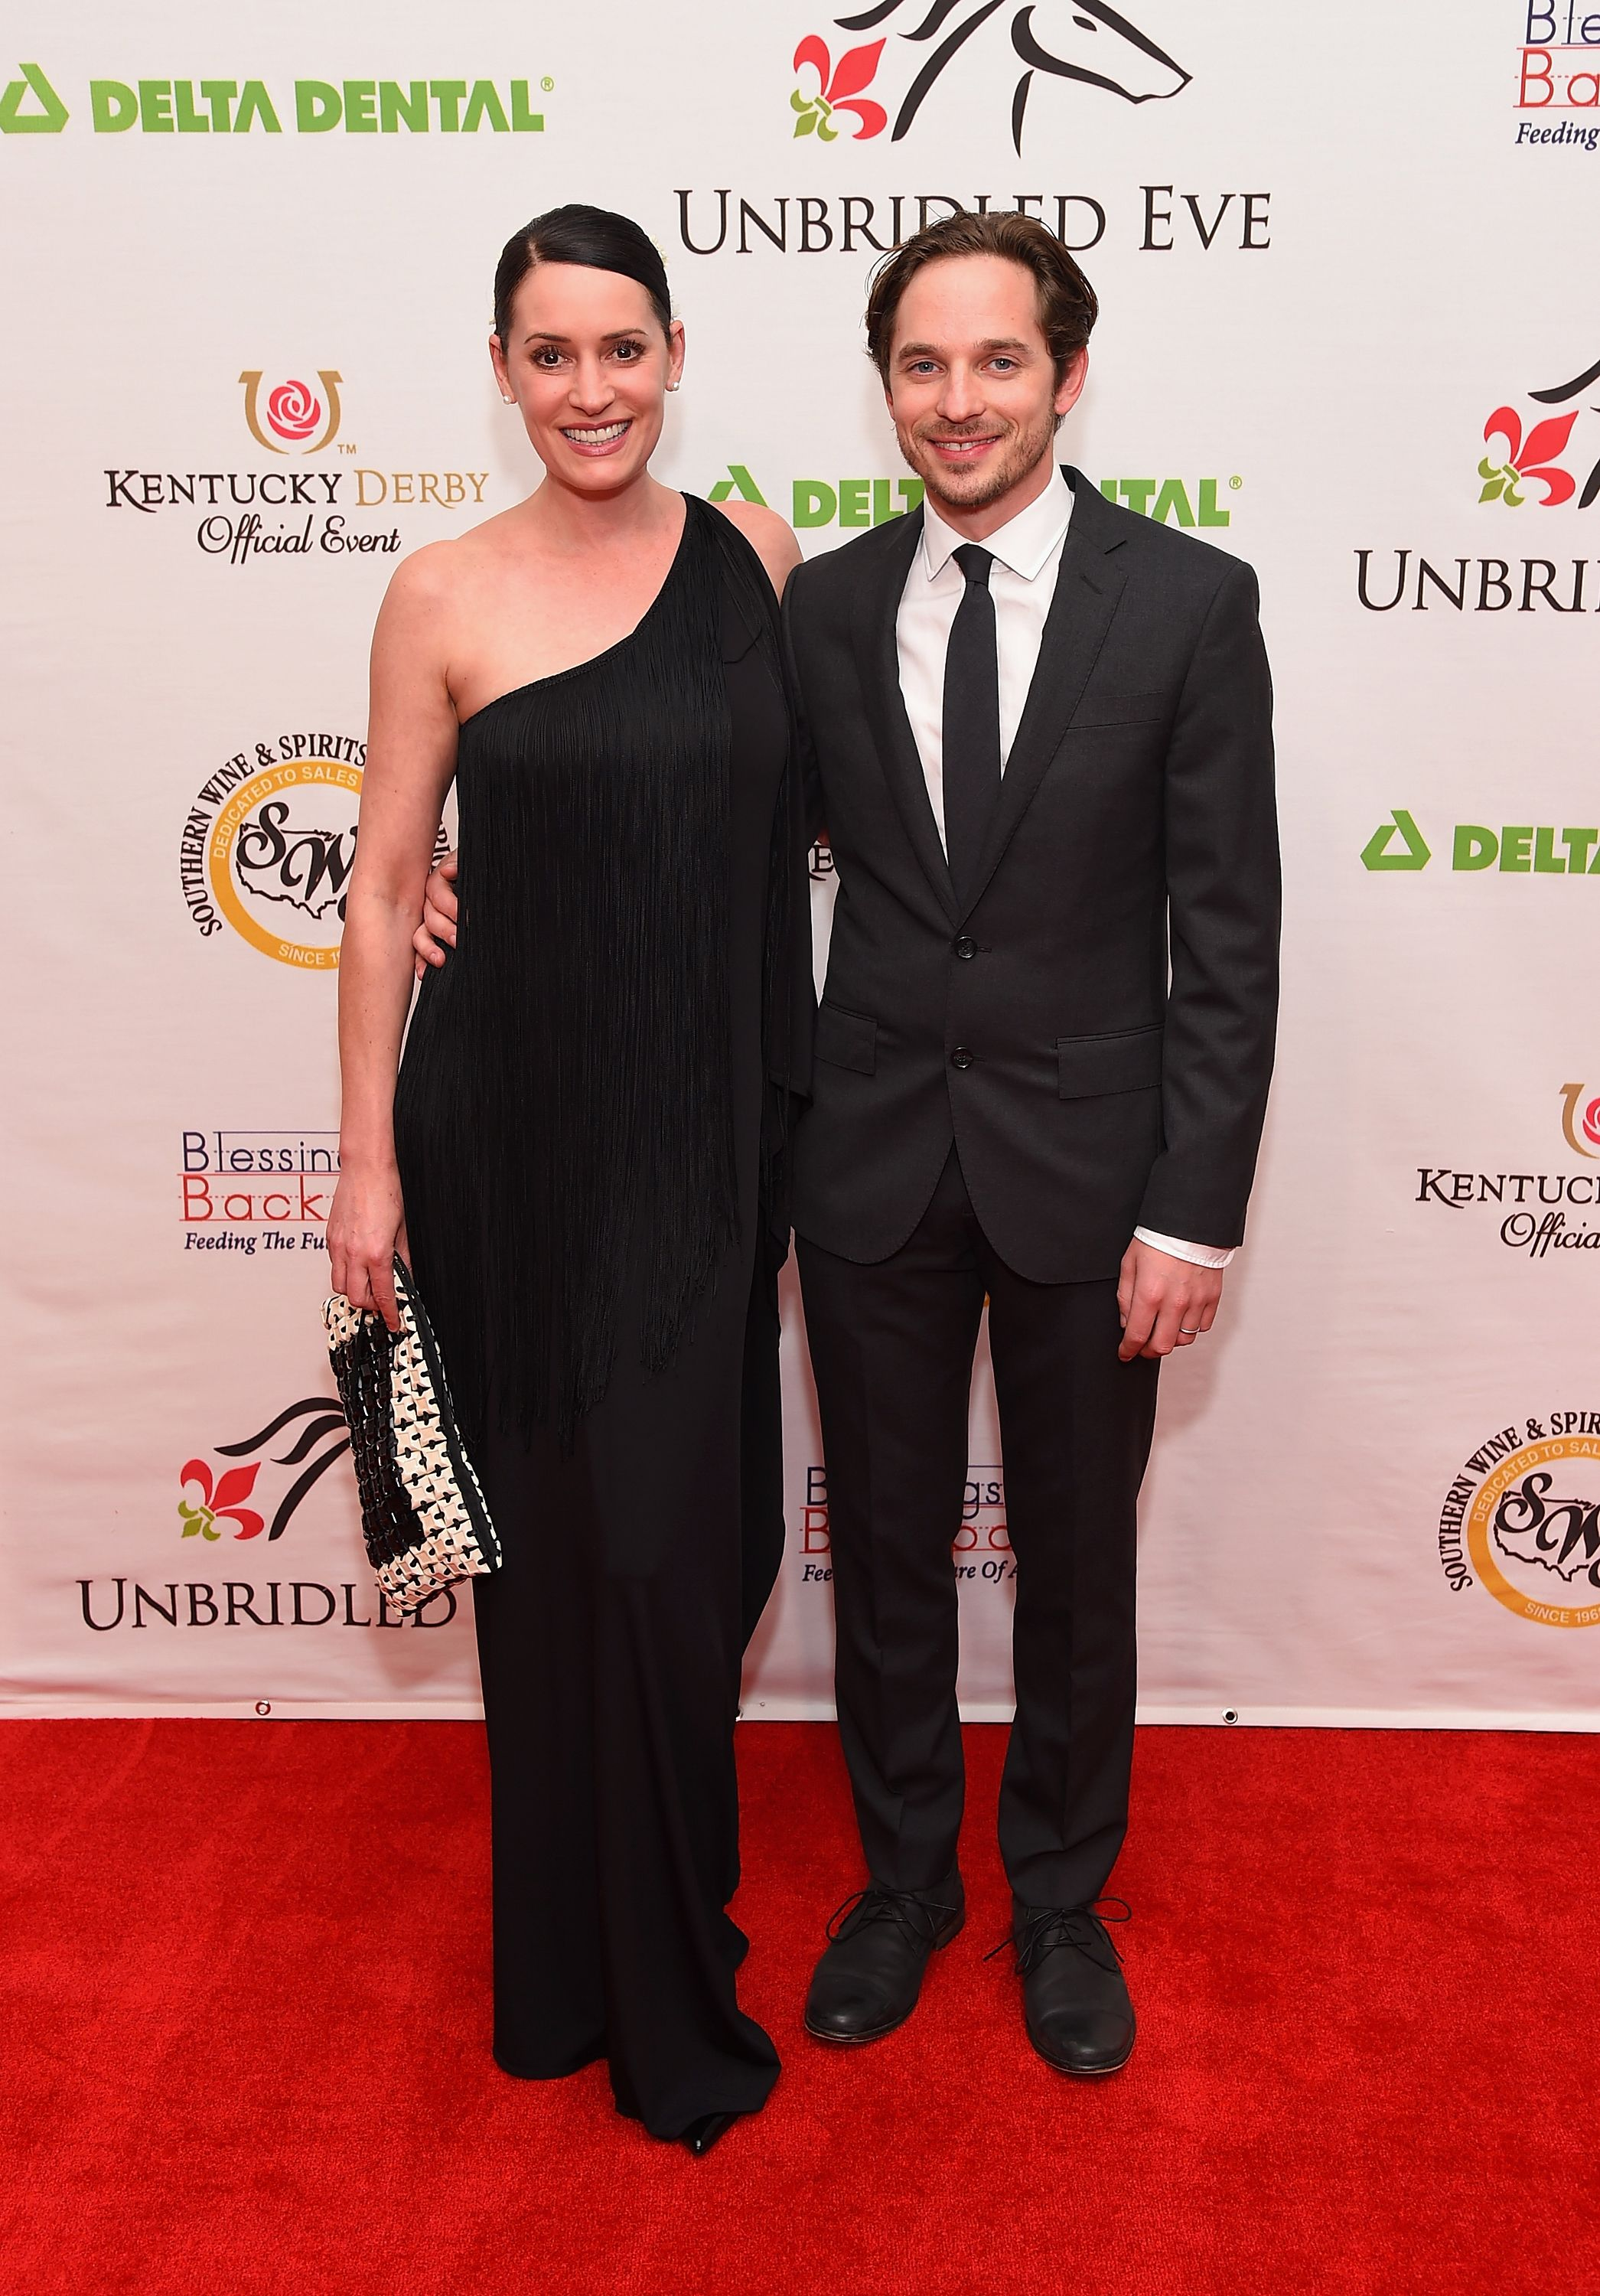 Paget Brewster and Steve Damstra were married by Matthew Gray Gubler / Getty Images